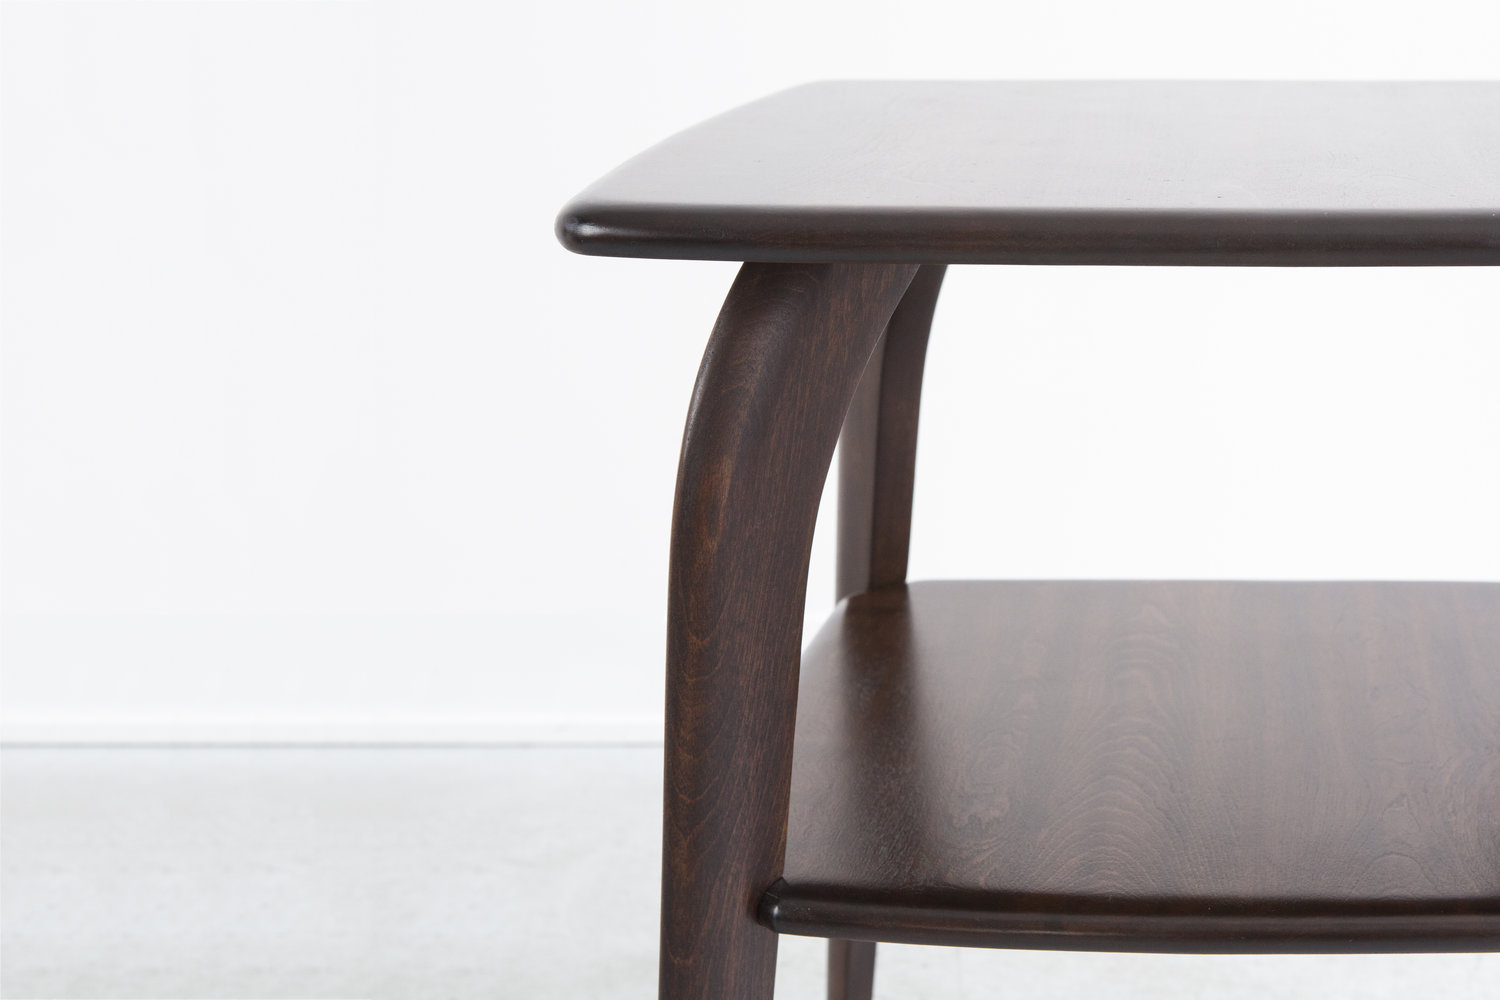 Heywood wakefield side table matthew rachman heywood wakefield side table geotapseo Image collections